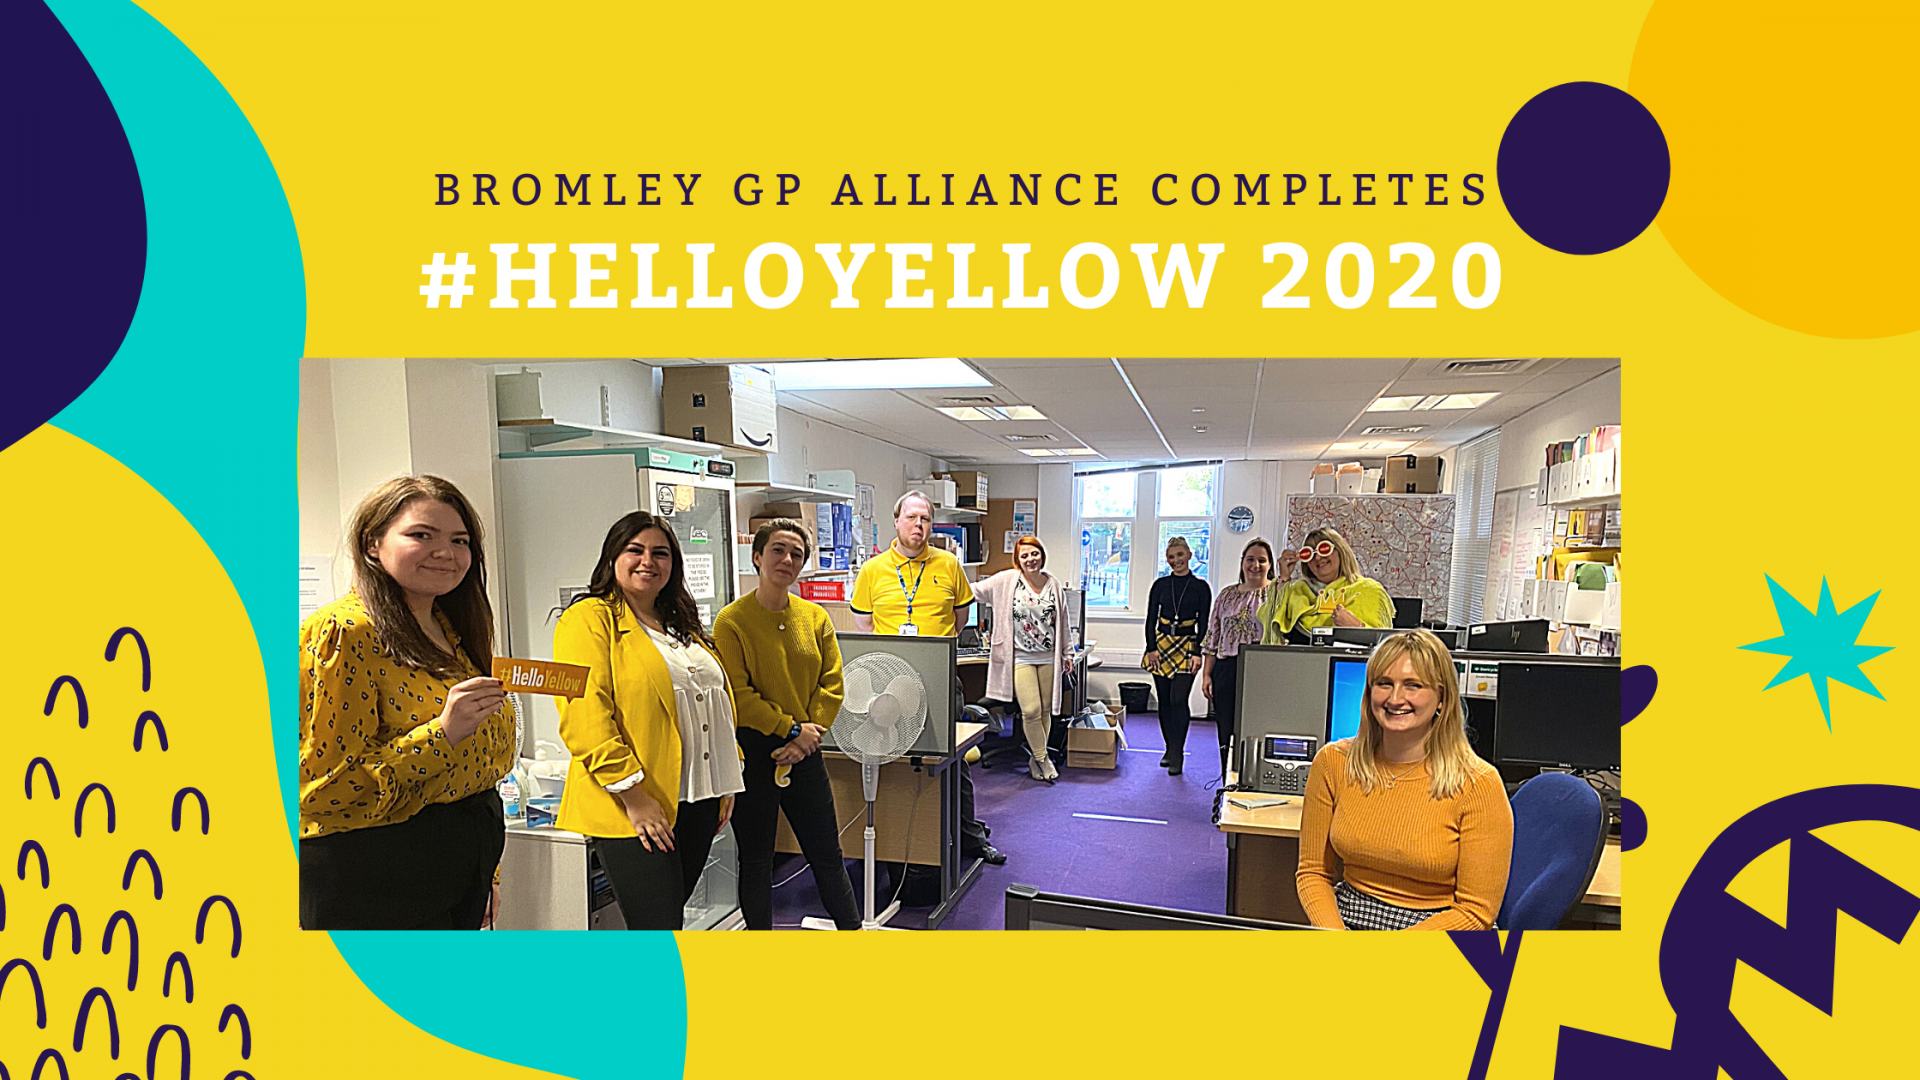 This is an image of the BGPA staff wearing yellow